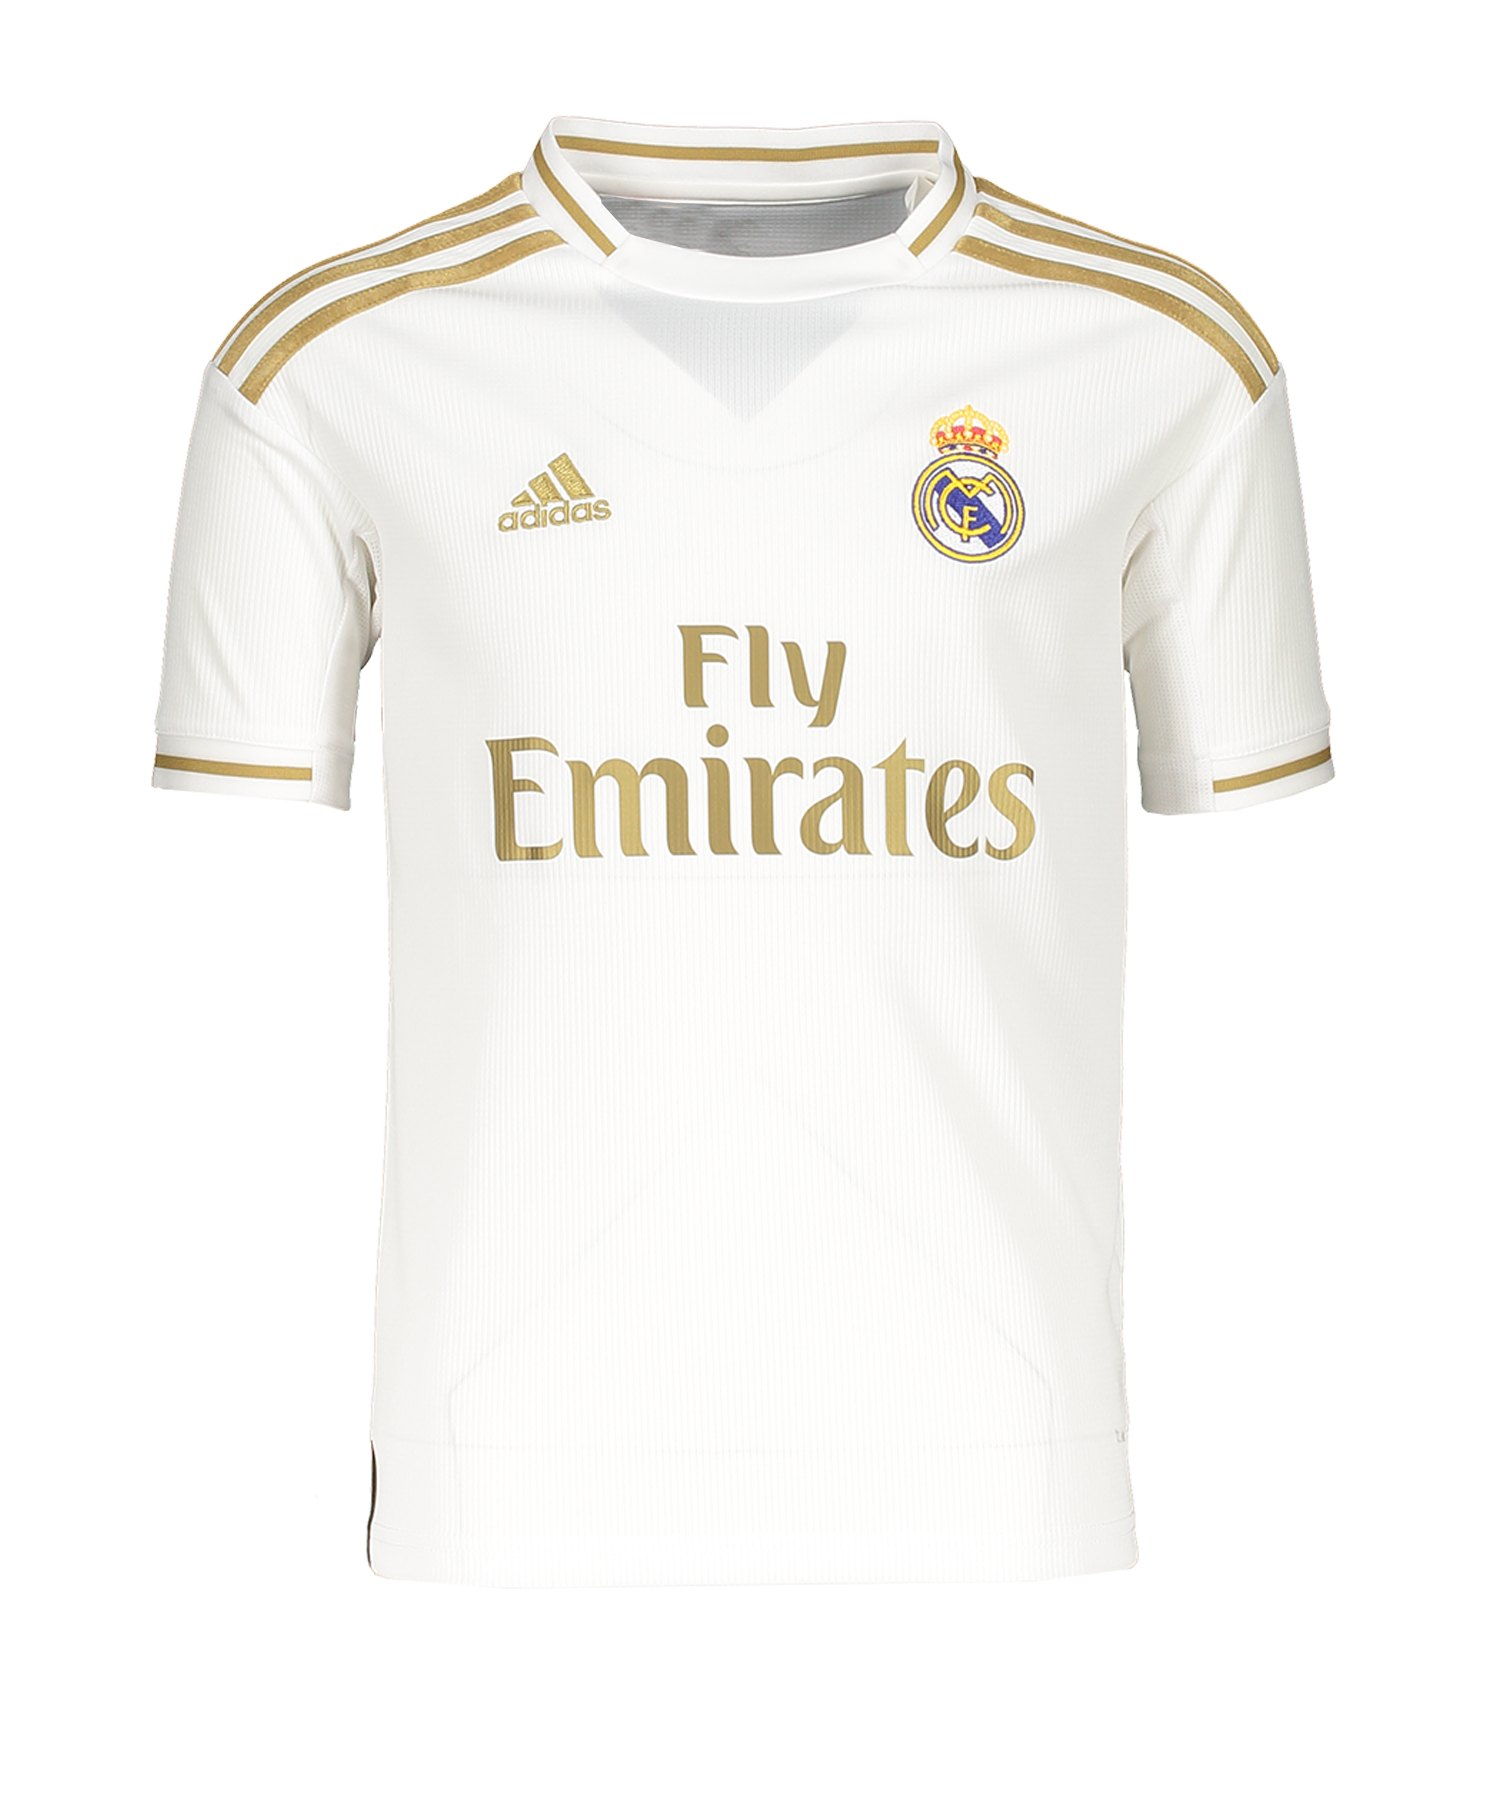 adidas Real Madrid Trikot Home 2019/2020 Kids Weiss - Weiss